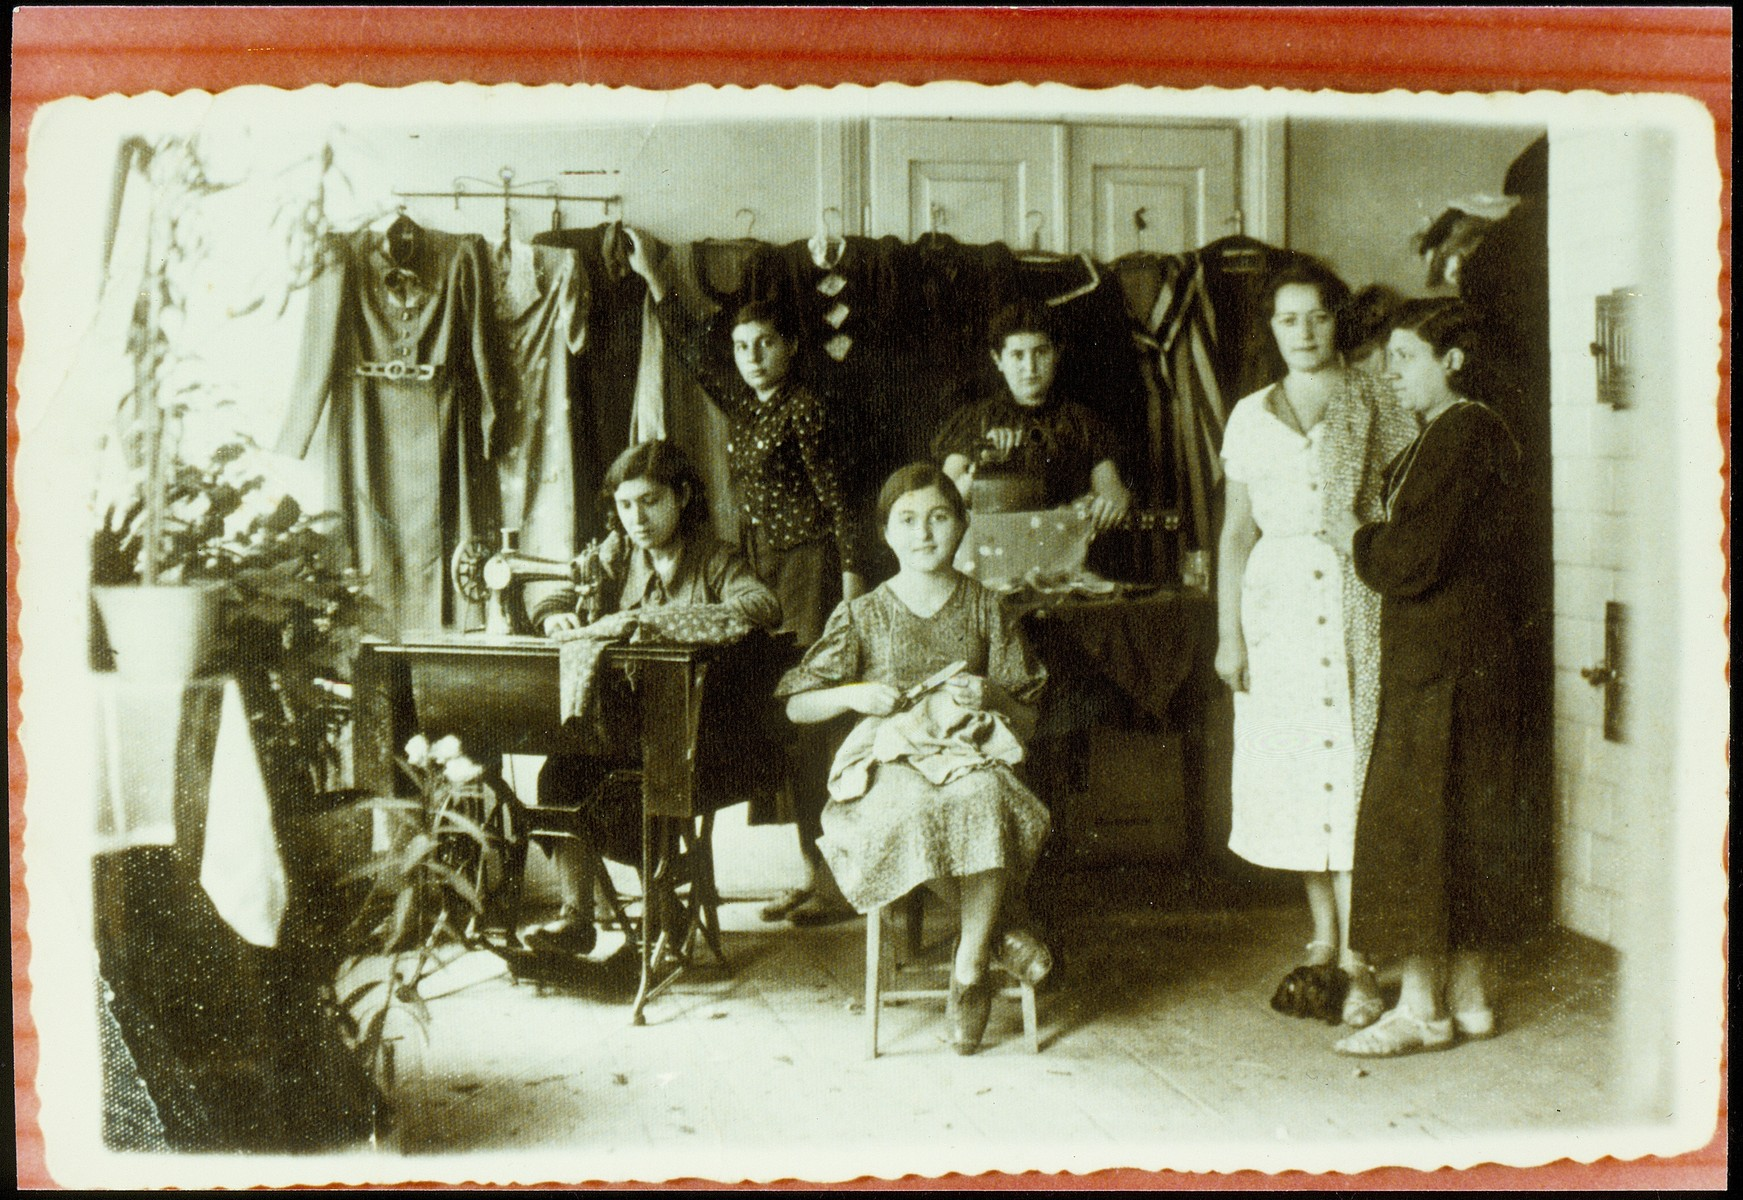 Young women sew in the workshop of master seamstress, Rochel Szulkin.  From right to left are Rochel Slonimski (who rented the workshop to Szulkin), Gittke Demitrowski, Beileh-Rivkeh Radunski, Sara Jankelewicz, and Szulkin's niece, Gitta Politacki at the sewing machine.  Gitta and Sarah survived the war in the Soviet Union; all the others were murdered in the September 1941 mass killing action in Eisiskes.